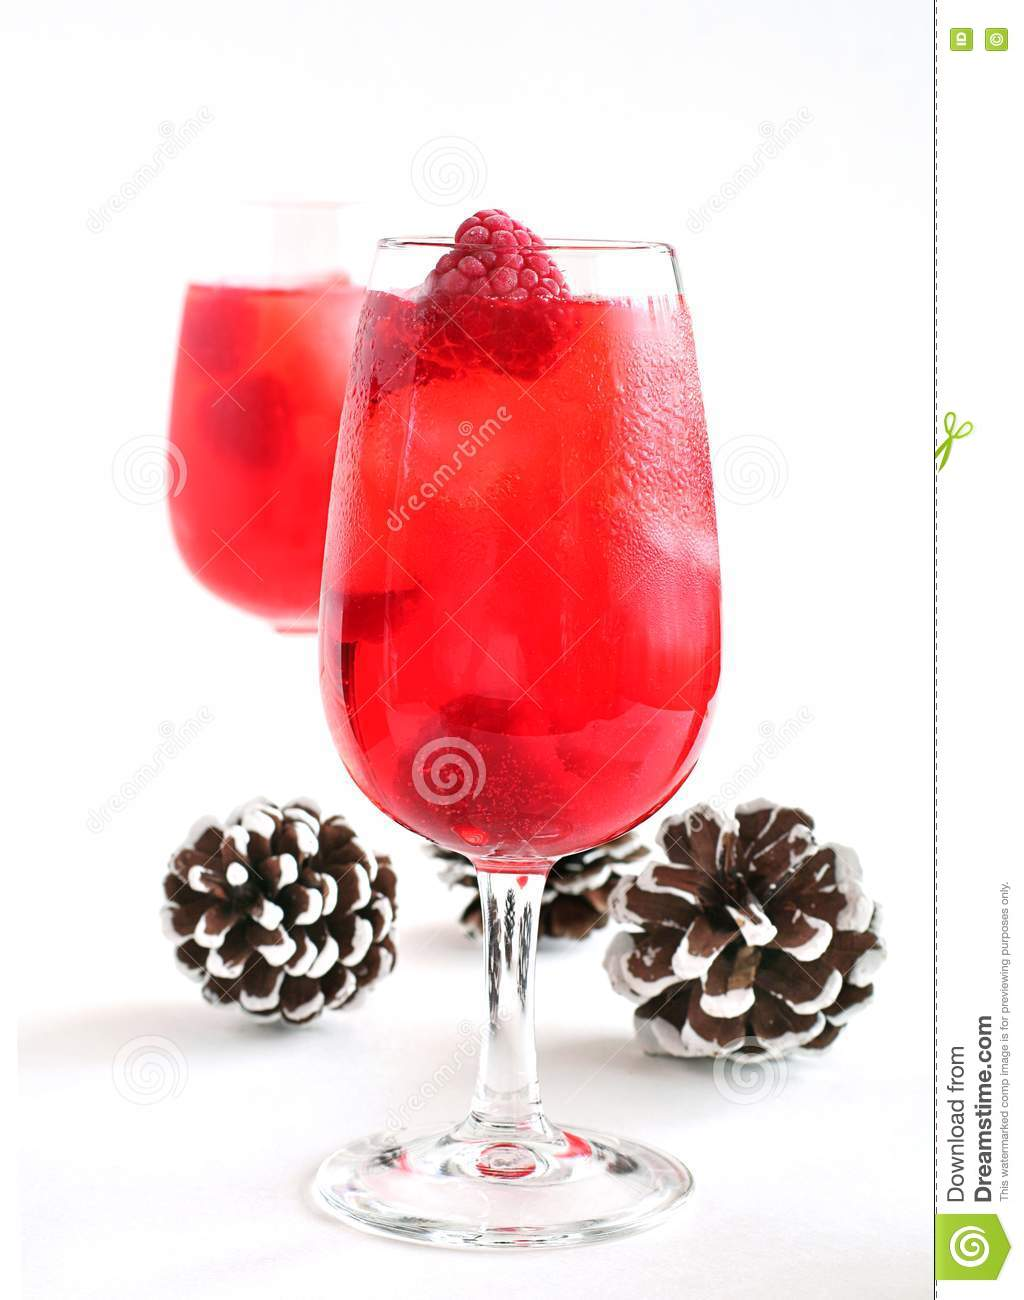 Raspberry Cocktail Royalty Free Stock Photography - Image: 17125477